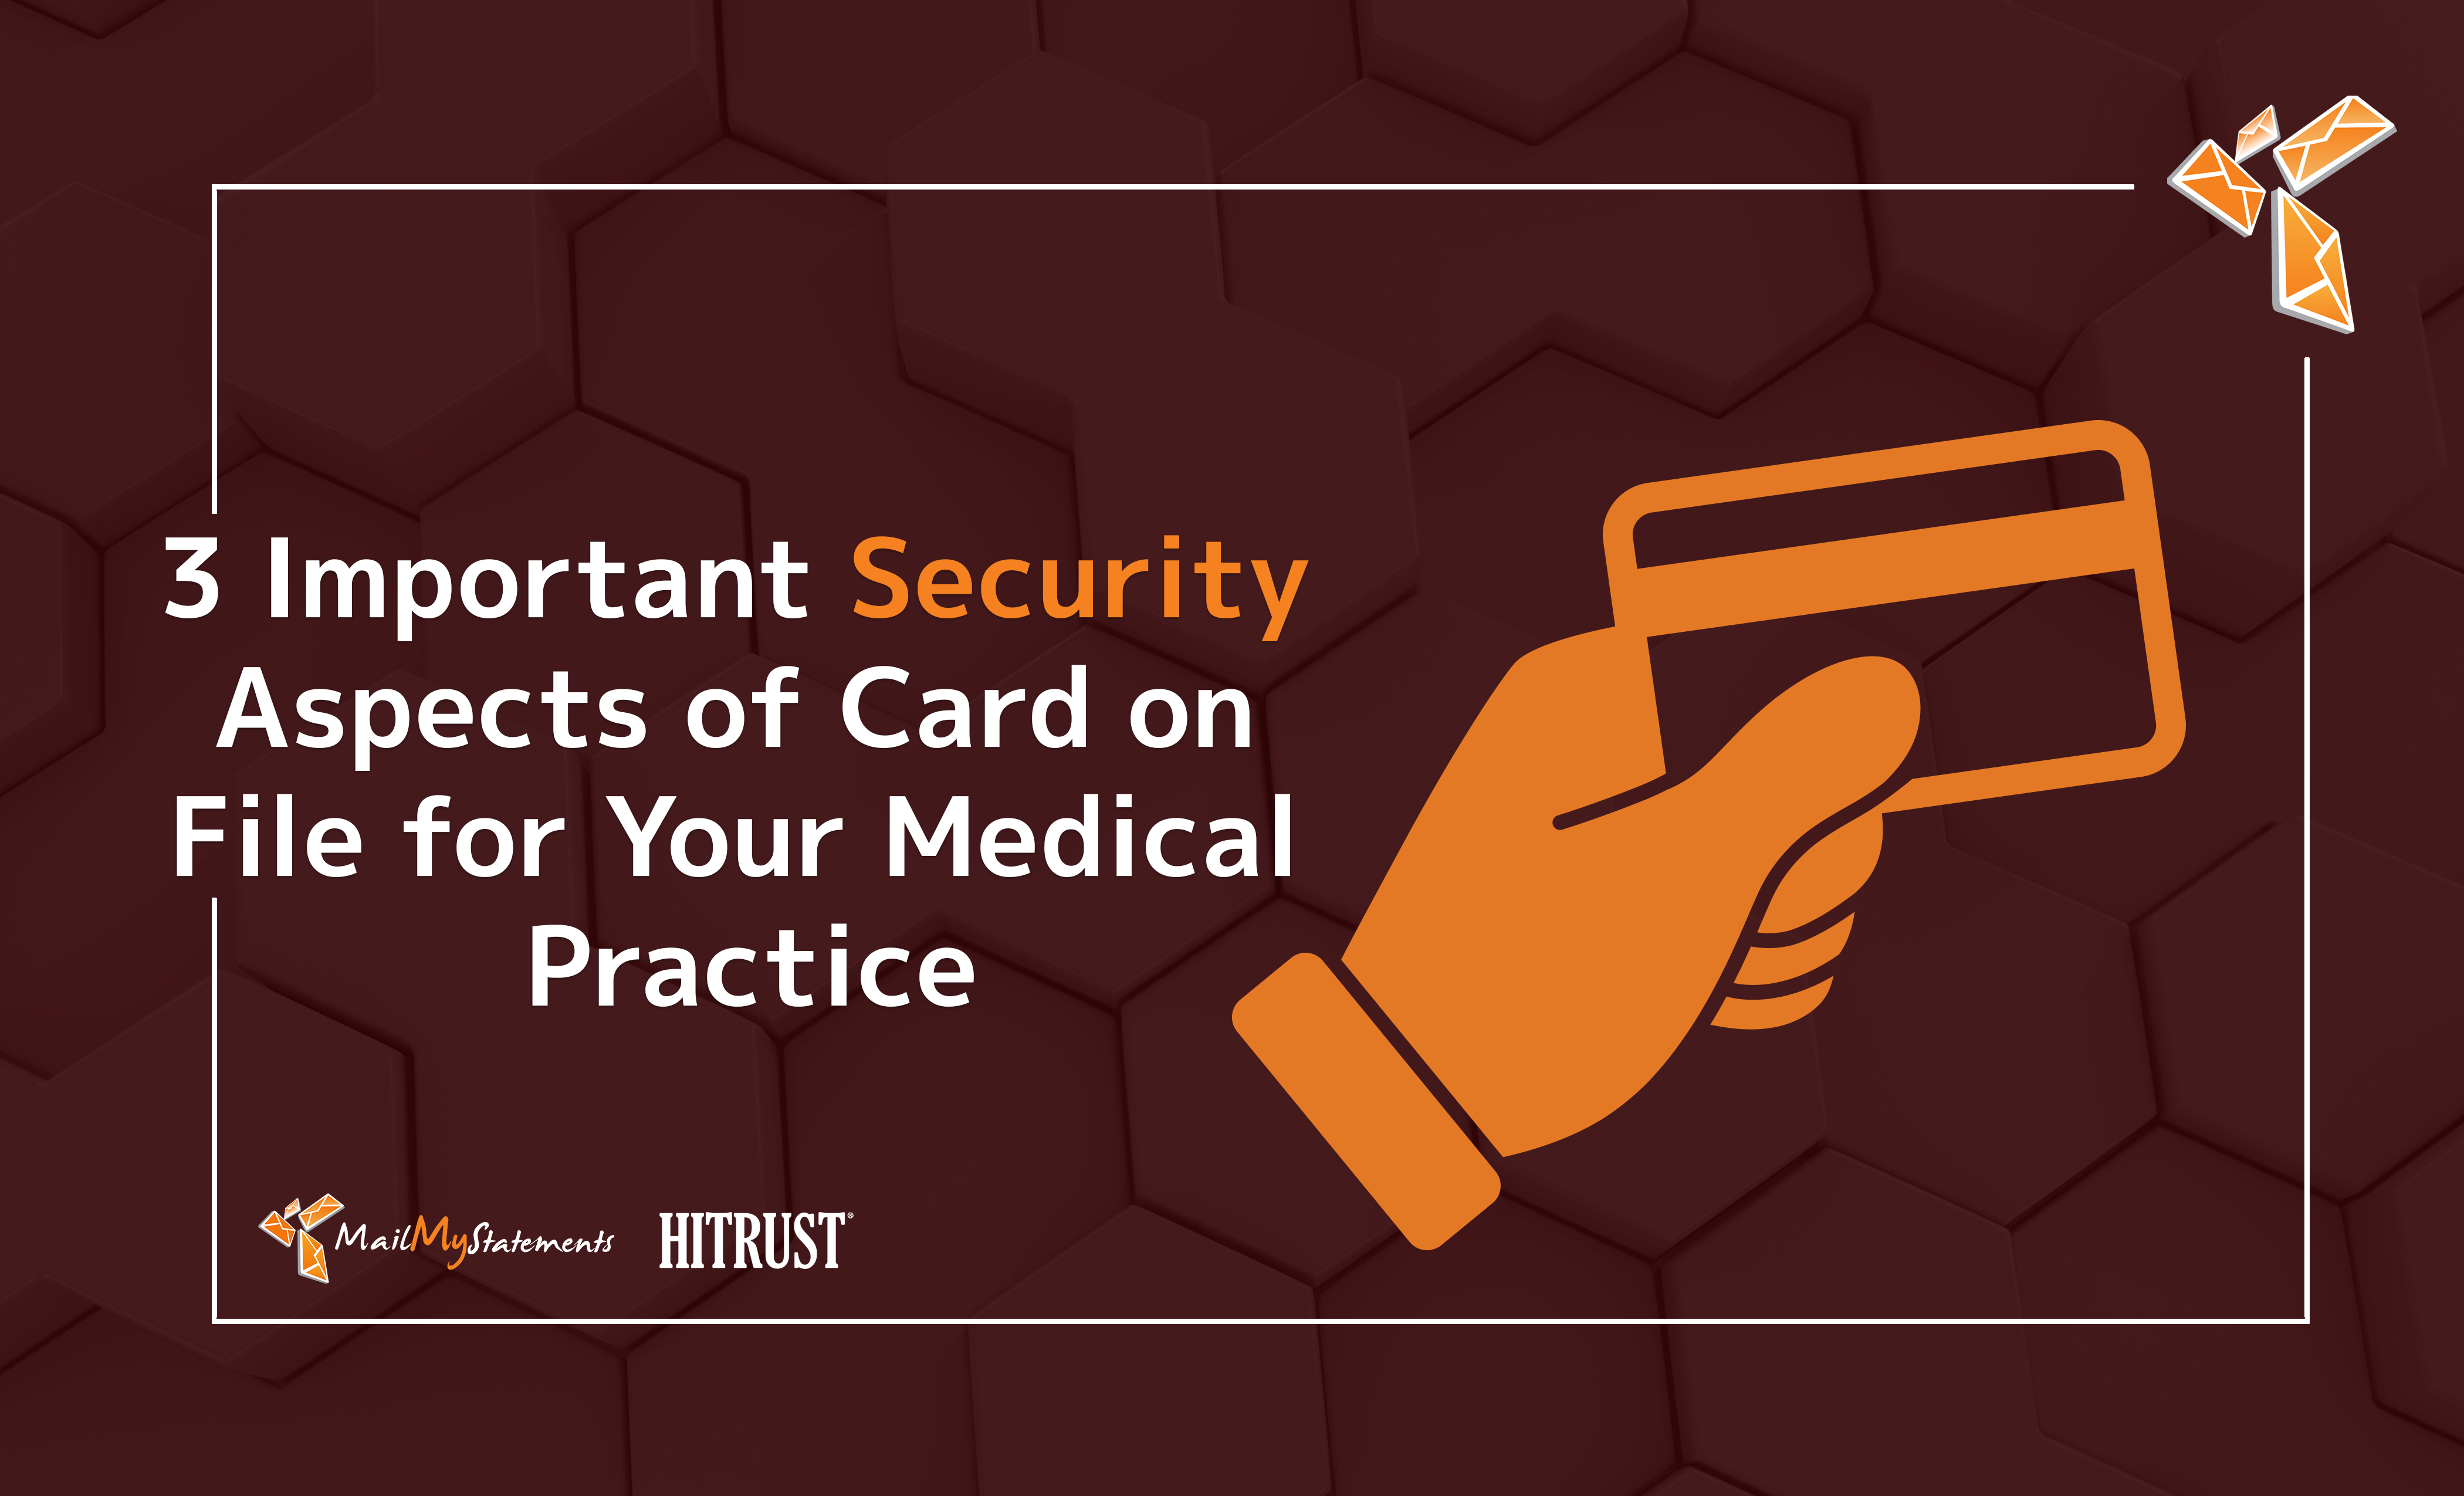 3 Important Security Aspects of Card on File for Your Medical Practice